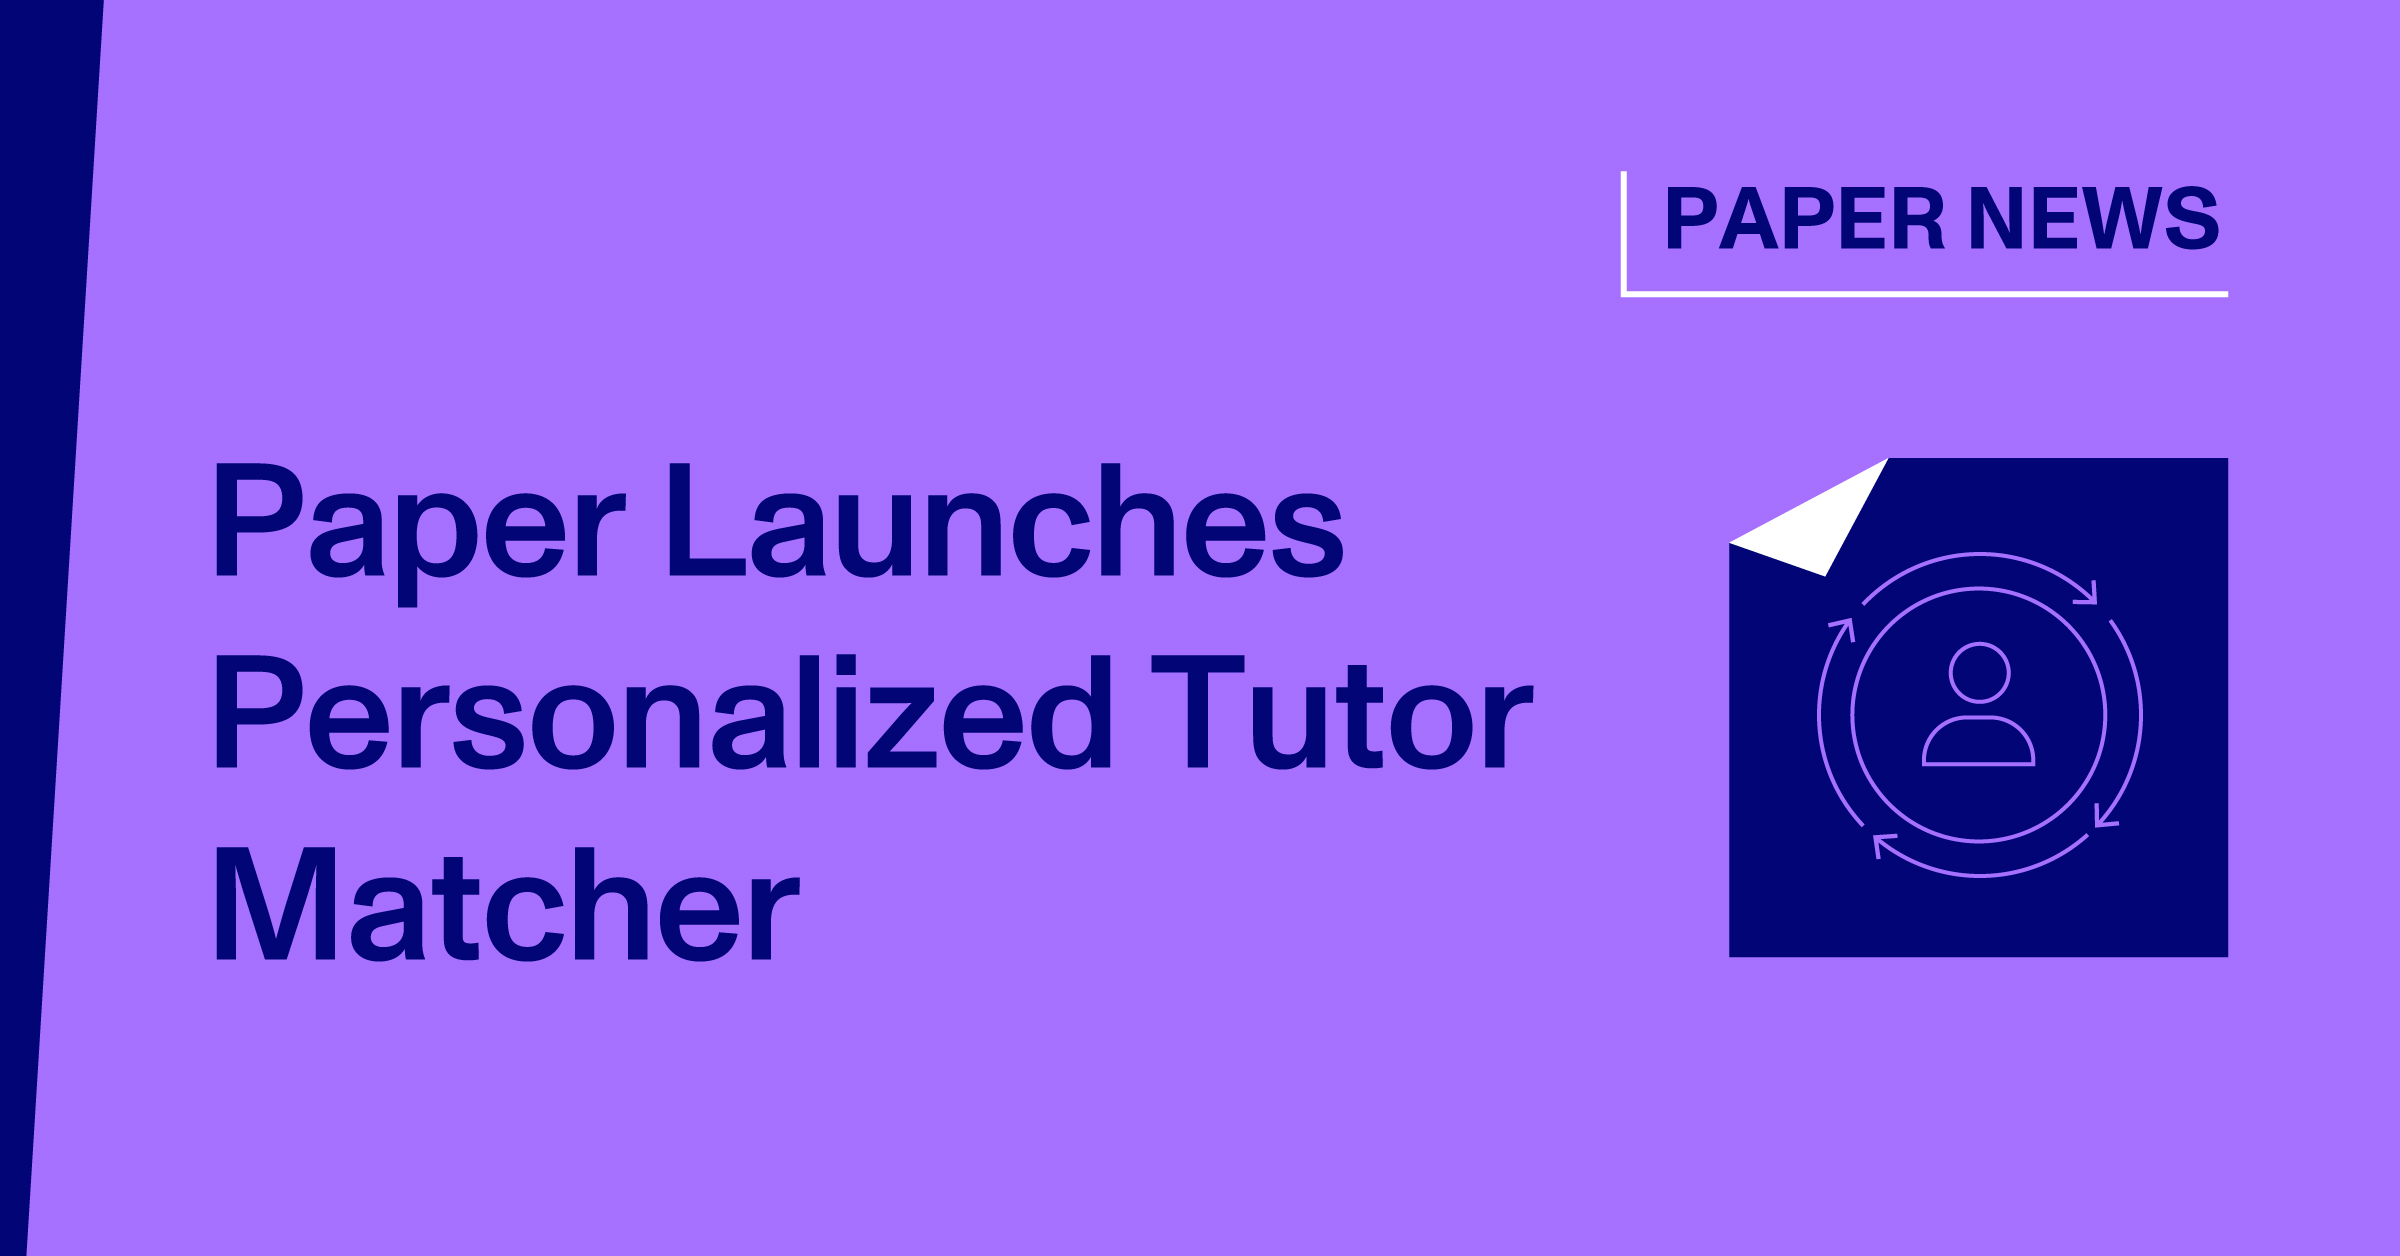 Paper Launches Personalized Tutor Matcher